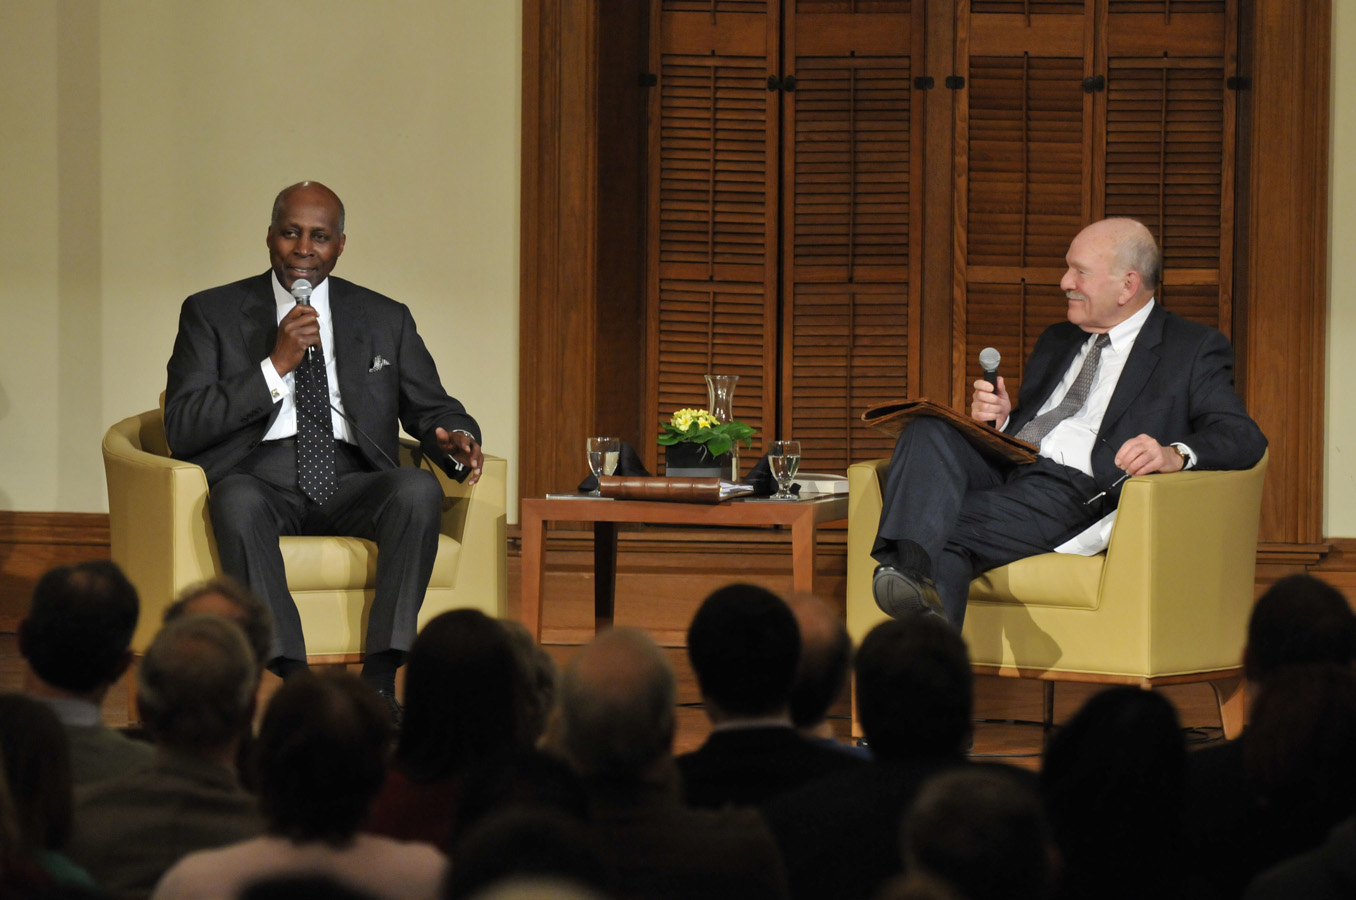 Vernon Jordan 57 Returns To The Quot Second Home Of My Youth